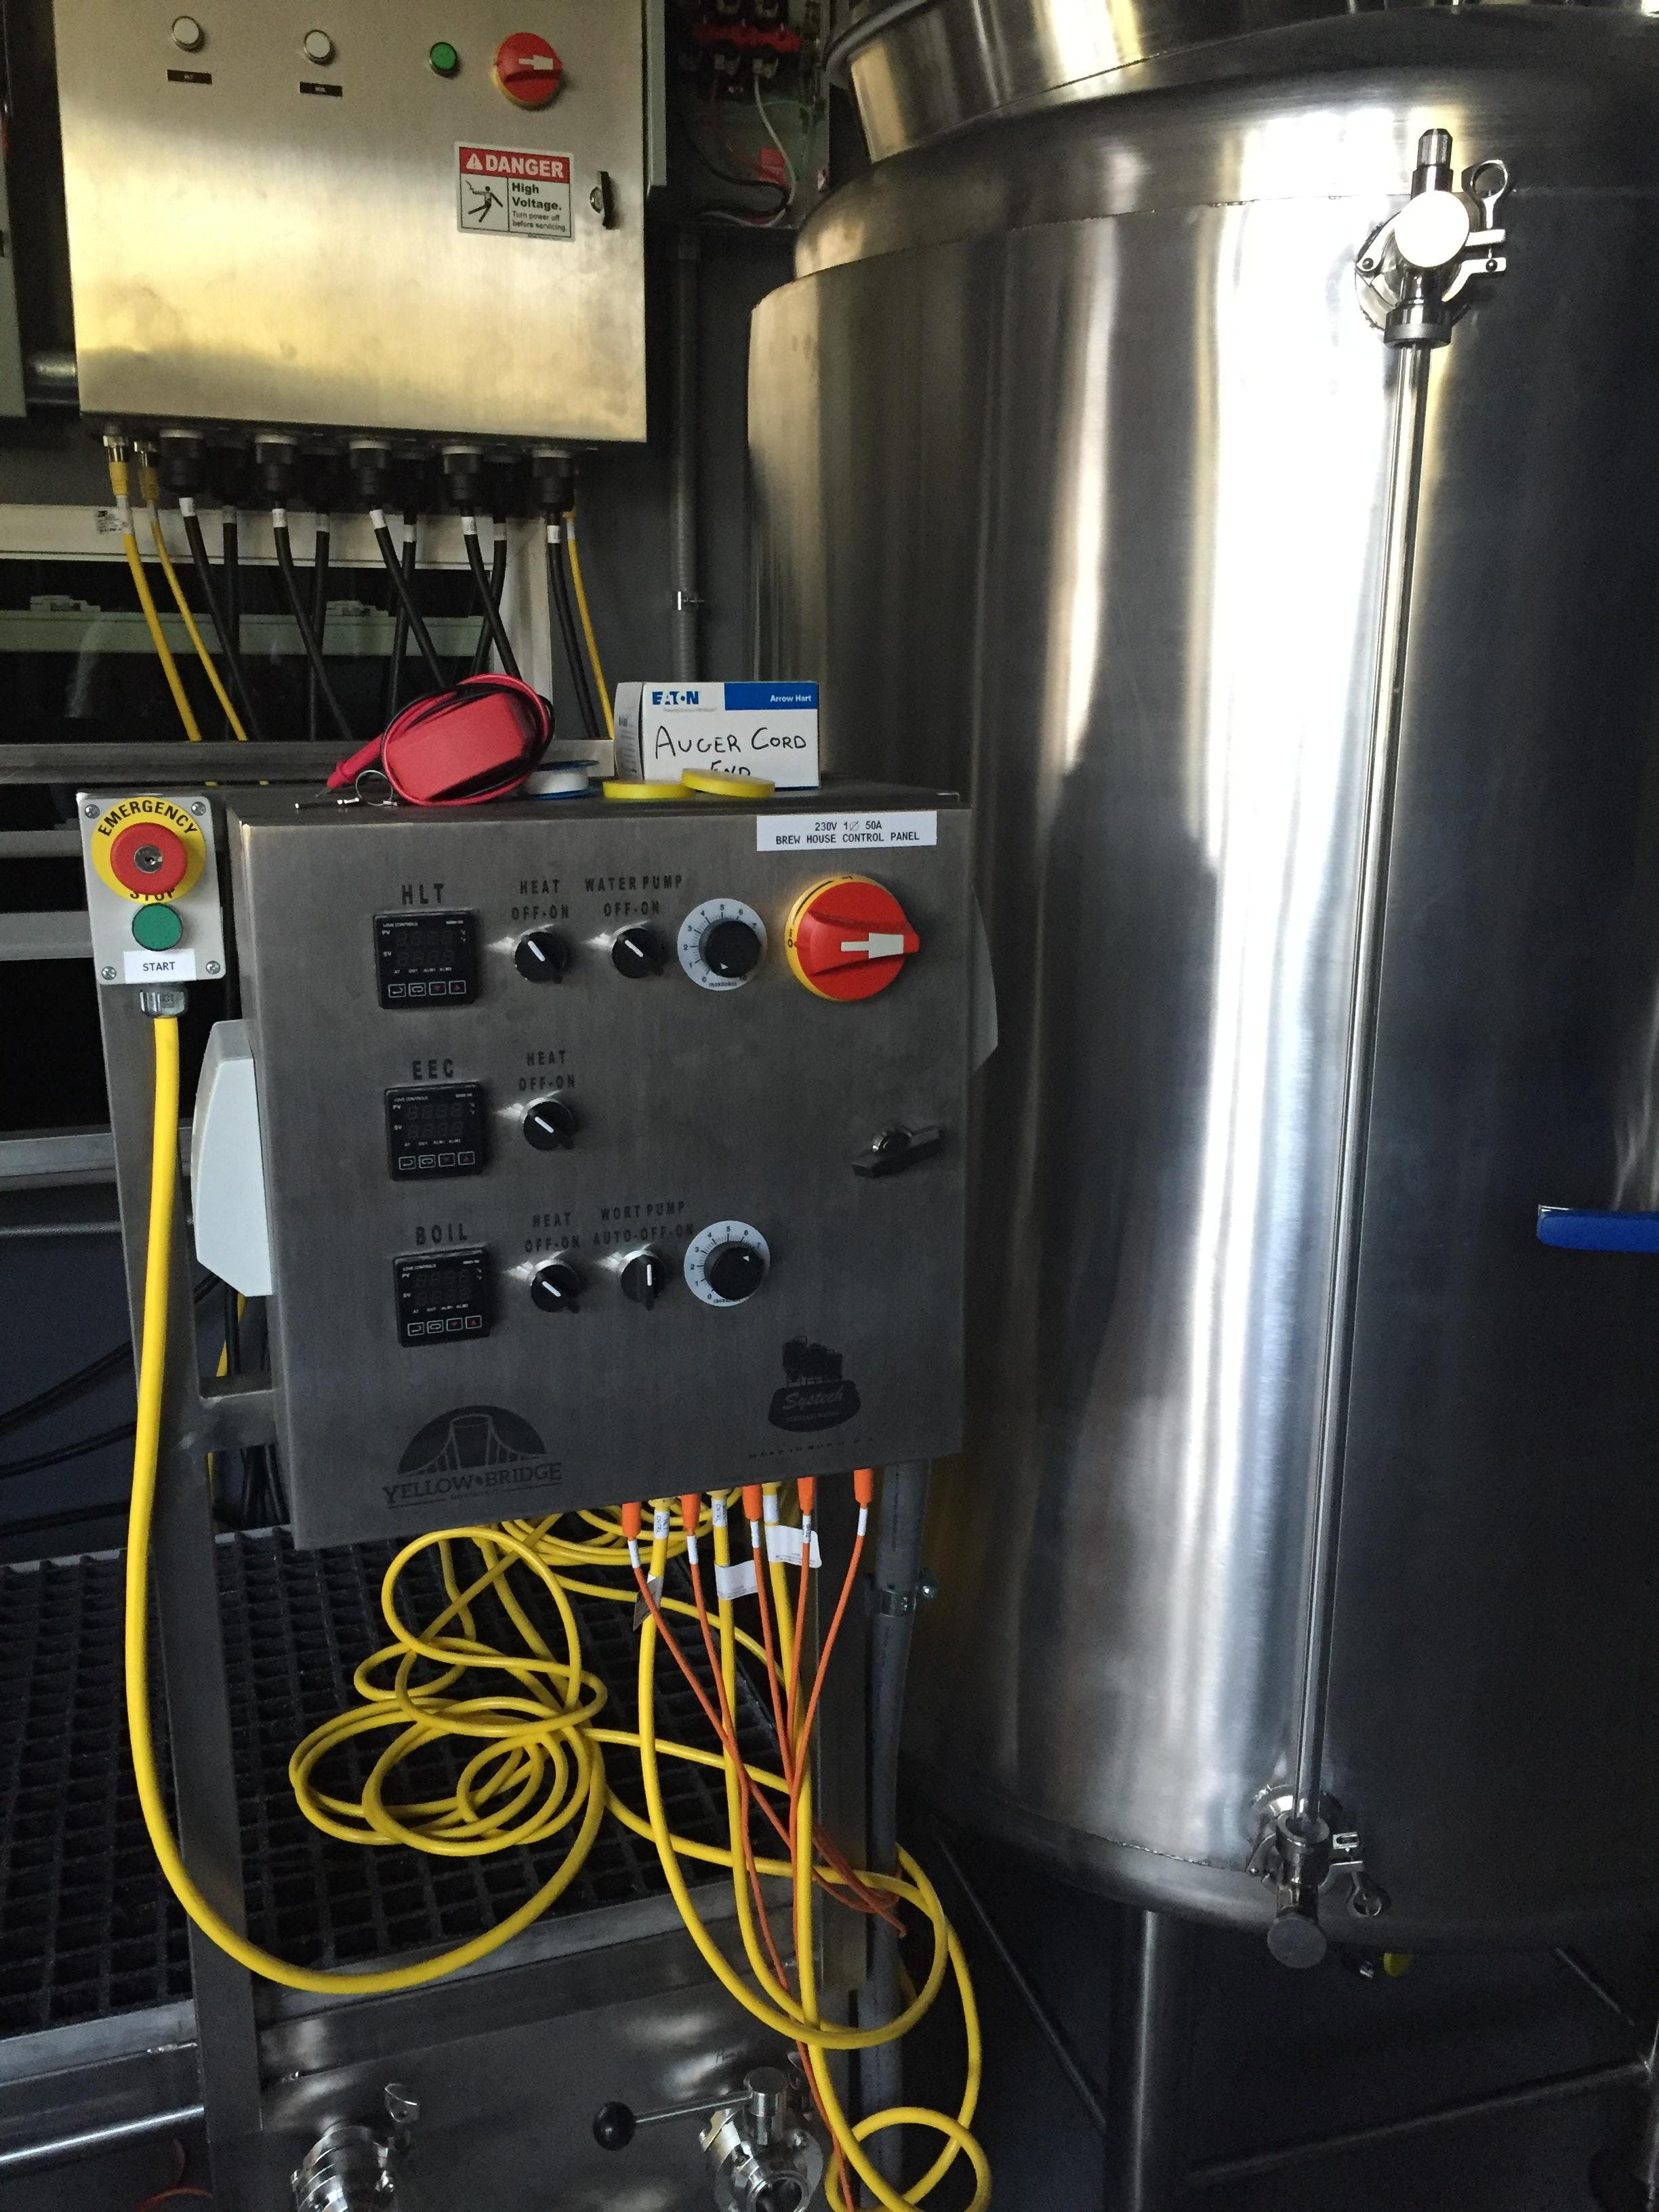 Systech Panel Control System sold by Systech Stainless Works, LLC